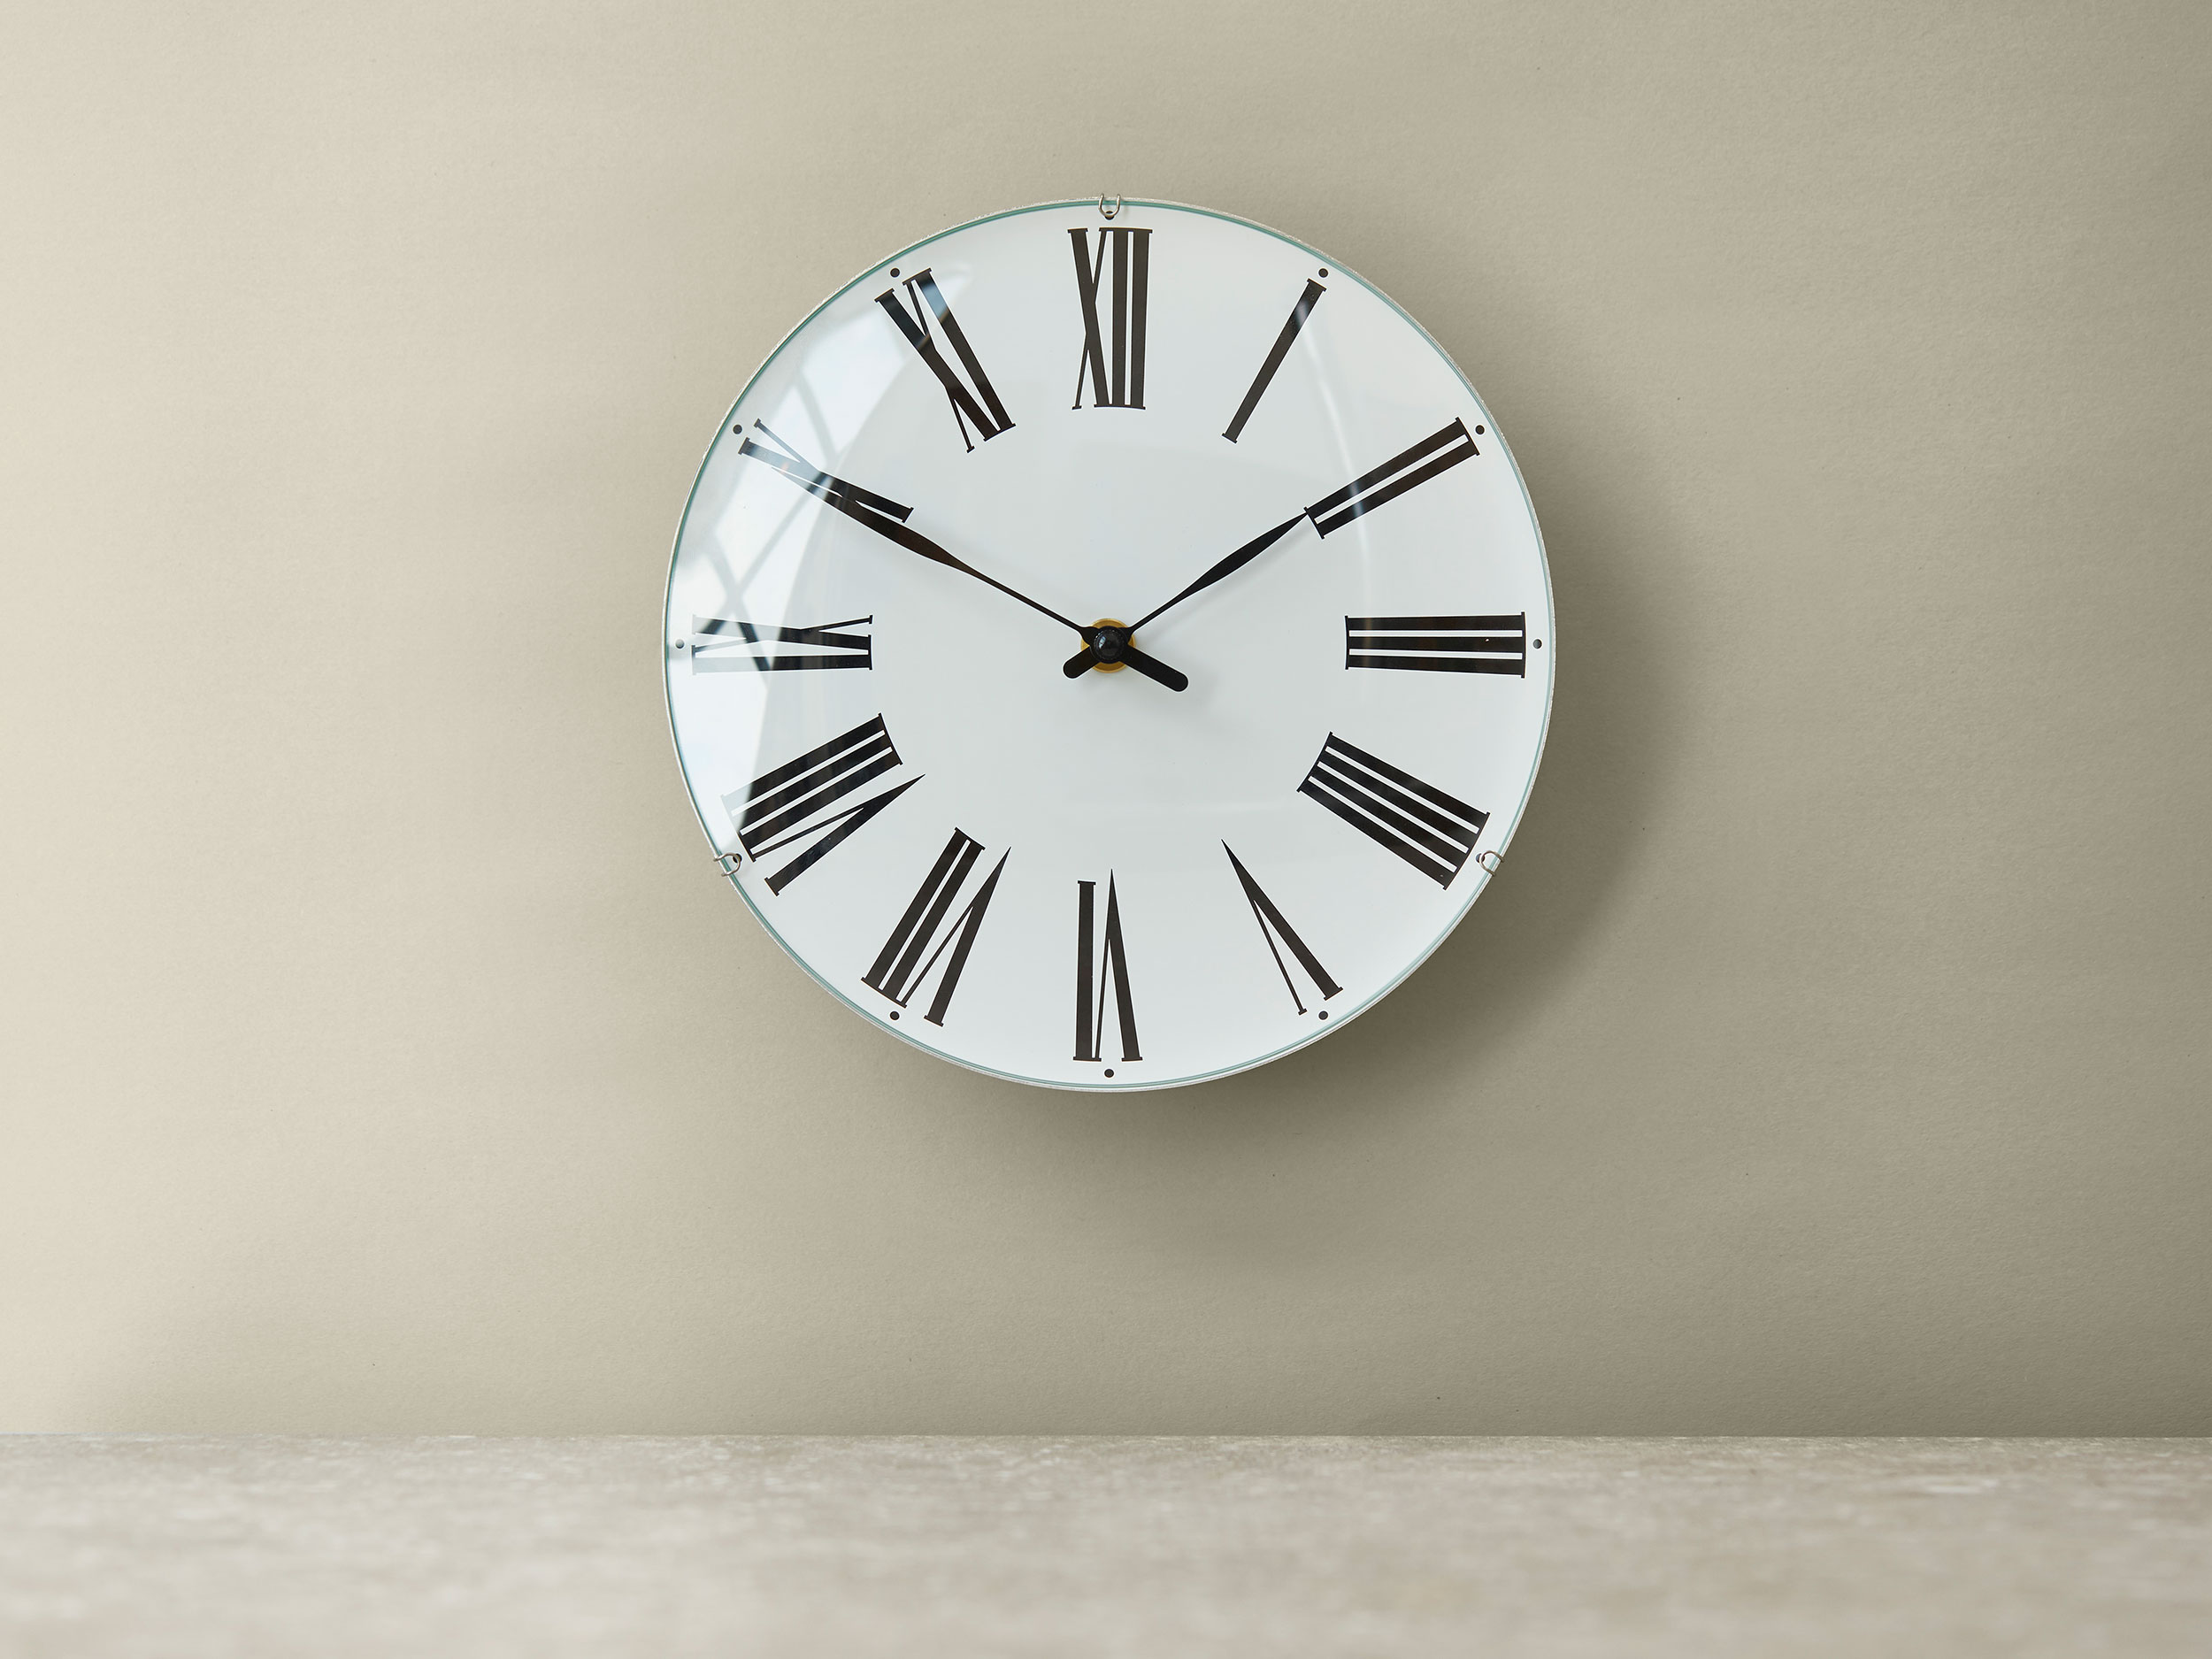 CLOCKS - Our ability covers a wide range of materials and techniques. We mainly produce wall & table clocks with reliable quartz movements. We are focused on unique designs and development with our customer.Read more